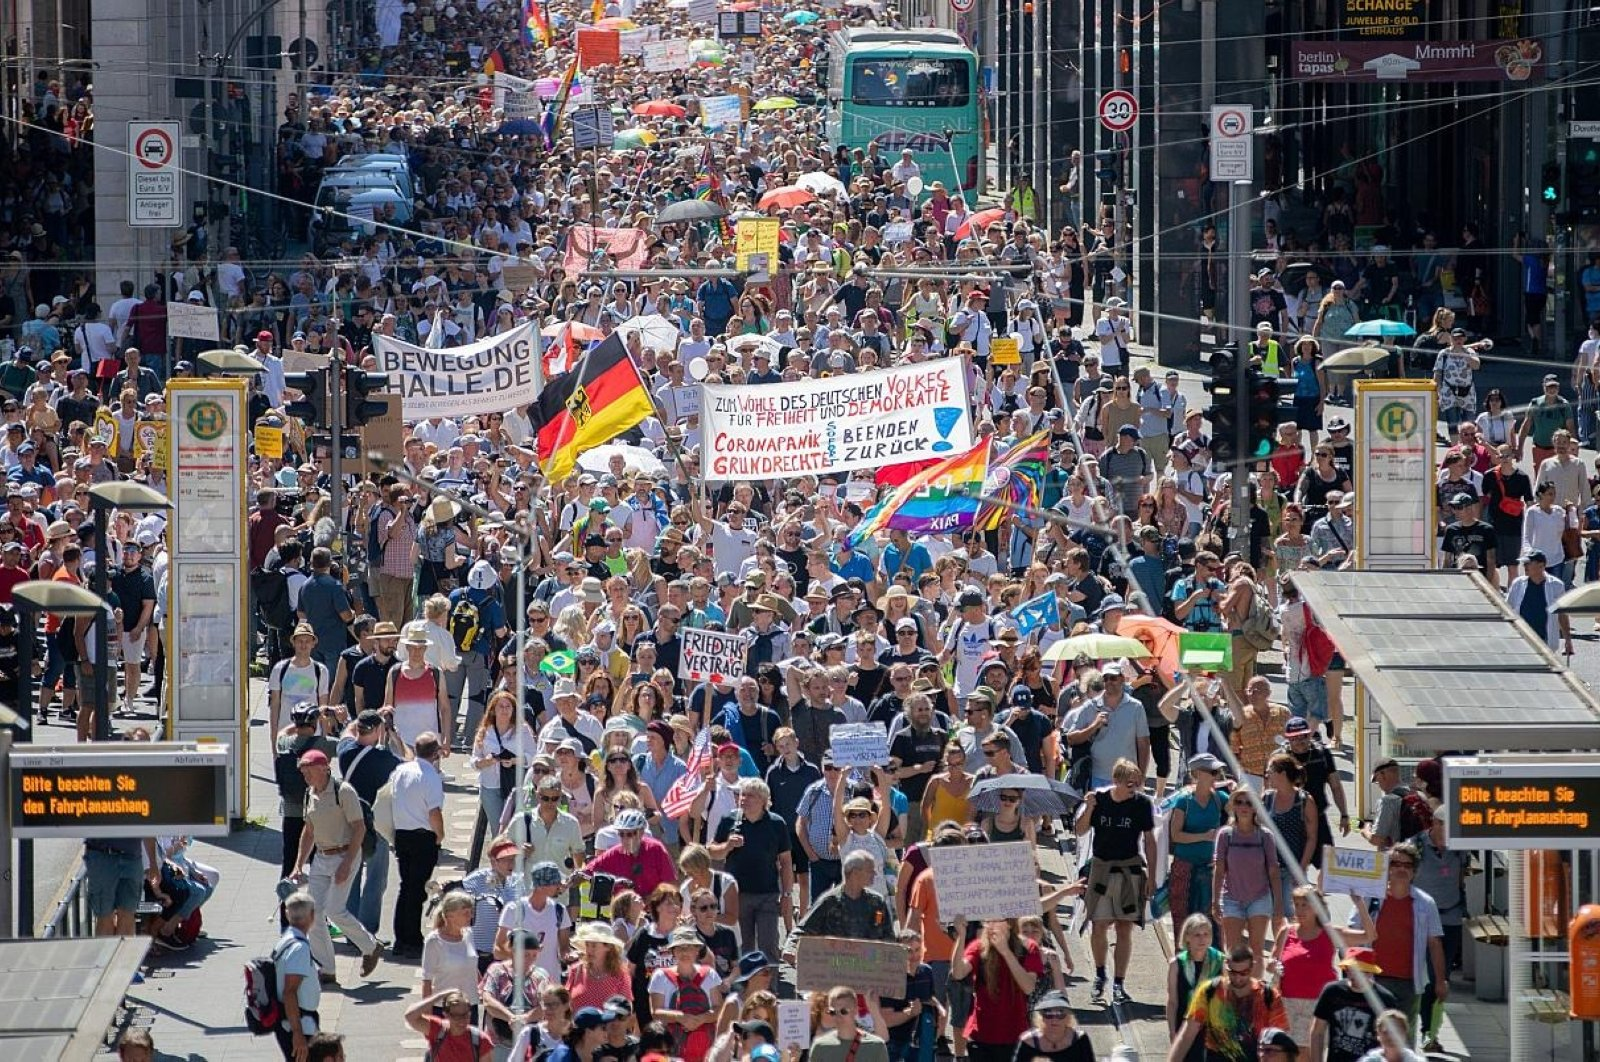 """Thousands march along the """"Friedrichstrasse"""" during a demonstration against coronavirus curbs in Berlin, Germany, Aug. 2, 2020. (AP Photo)"""